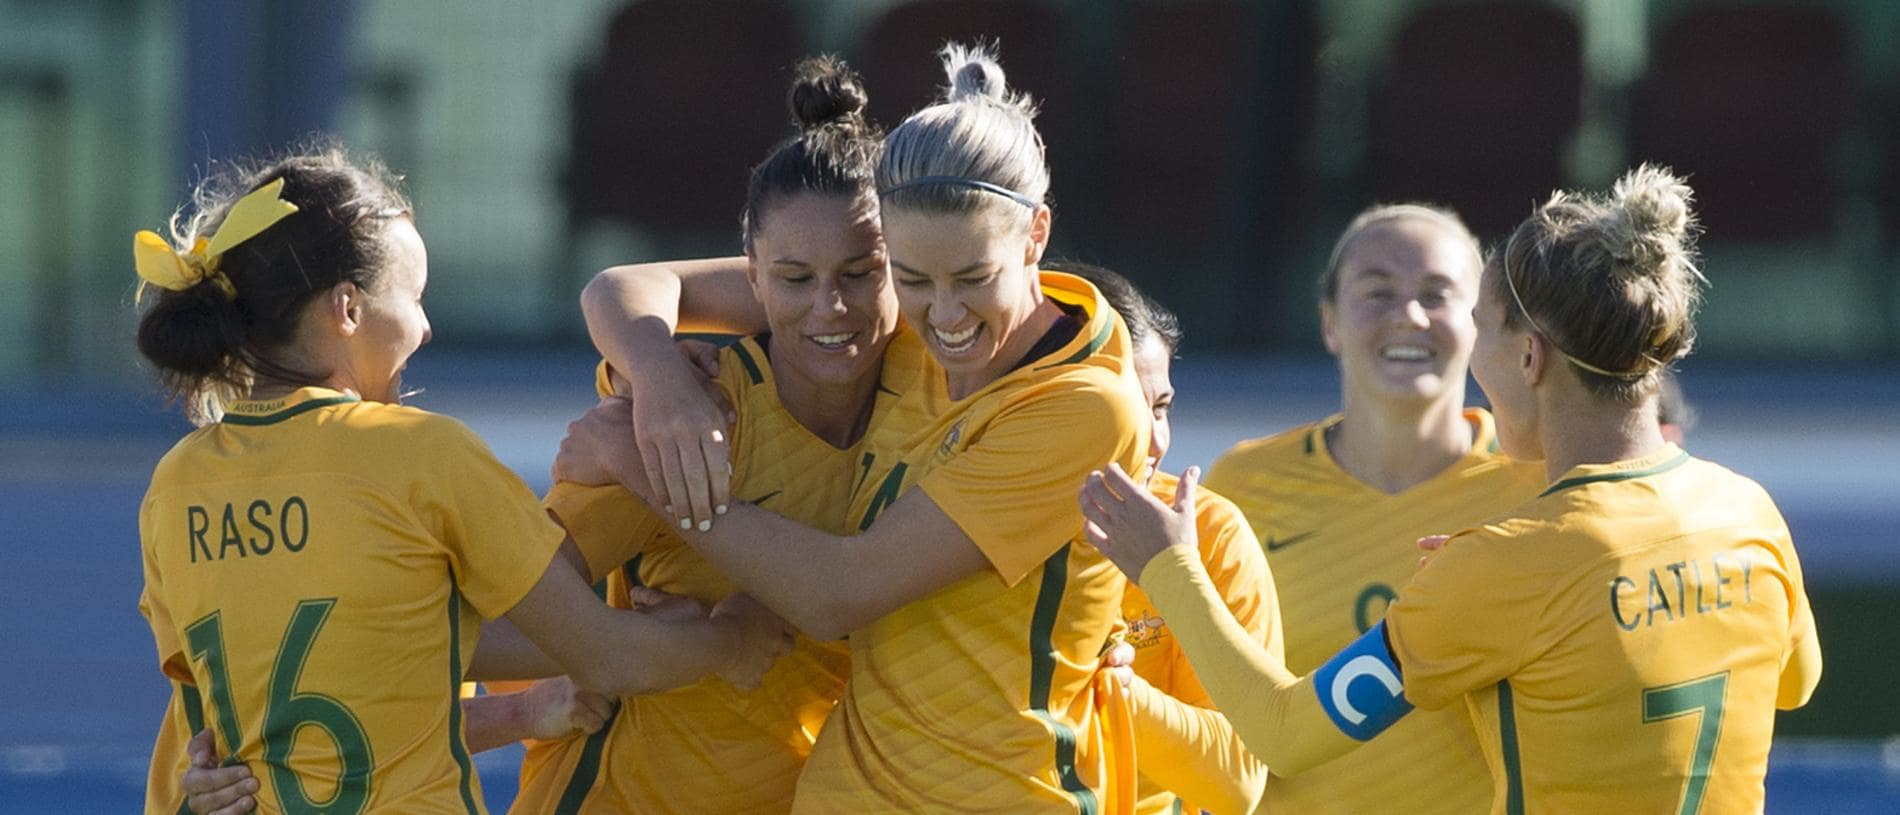 VILA REAL DE SANTO ANTONIO, PORTUGAL - MARCH 03: Emily Gielnik (second from left) is congratulated on scoring her second goal of the match for Australia during the Group C 2017 Algarve Cup match between Australia Women and Netherlands Women at the Vila Real de Santo Antonio Sports Complex on March 03, 2017 in Vila Real de Santo Antonio, Portugal. (Photo by Visionhaus/Corbis via Getty Images)